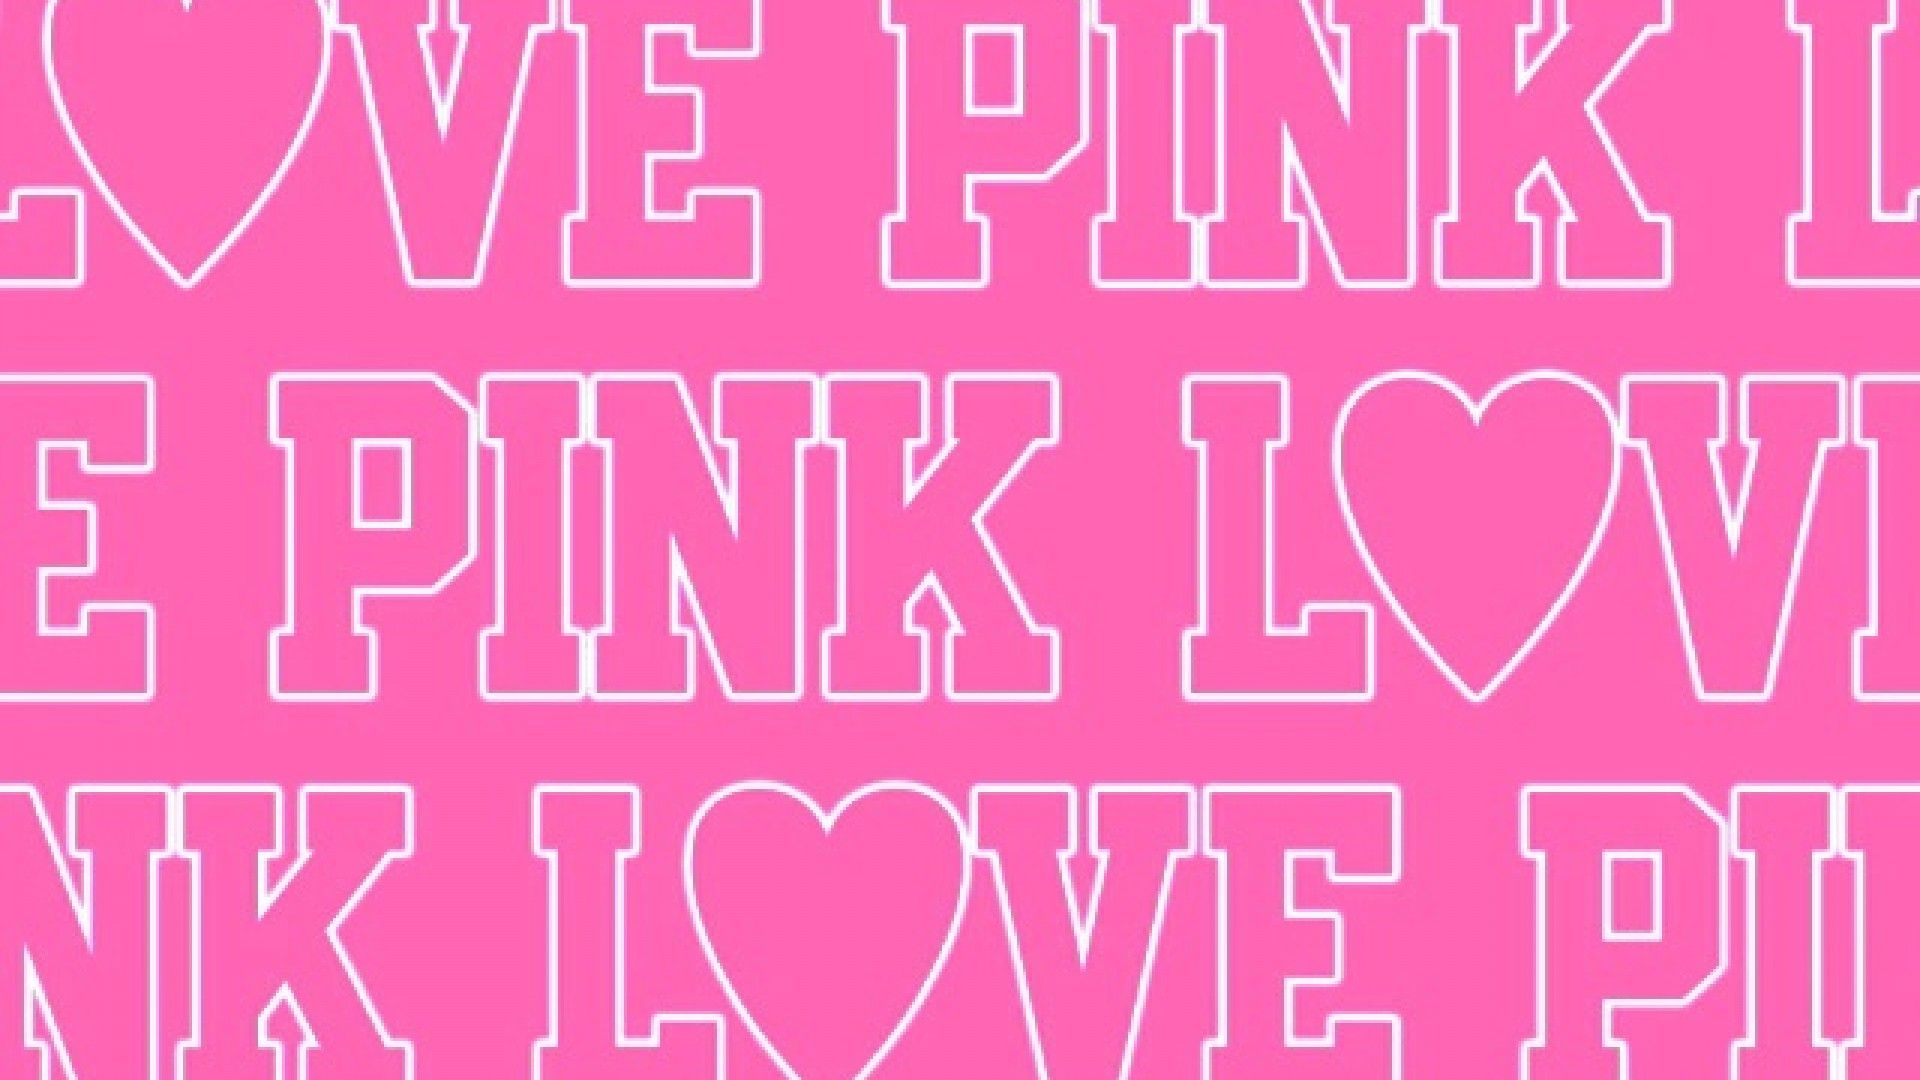 Images For Gt Vs Pink Iphone Wallpaper 1920x1080PX